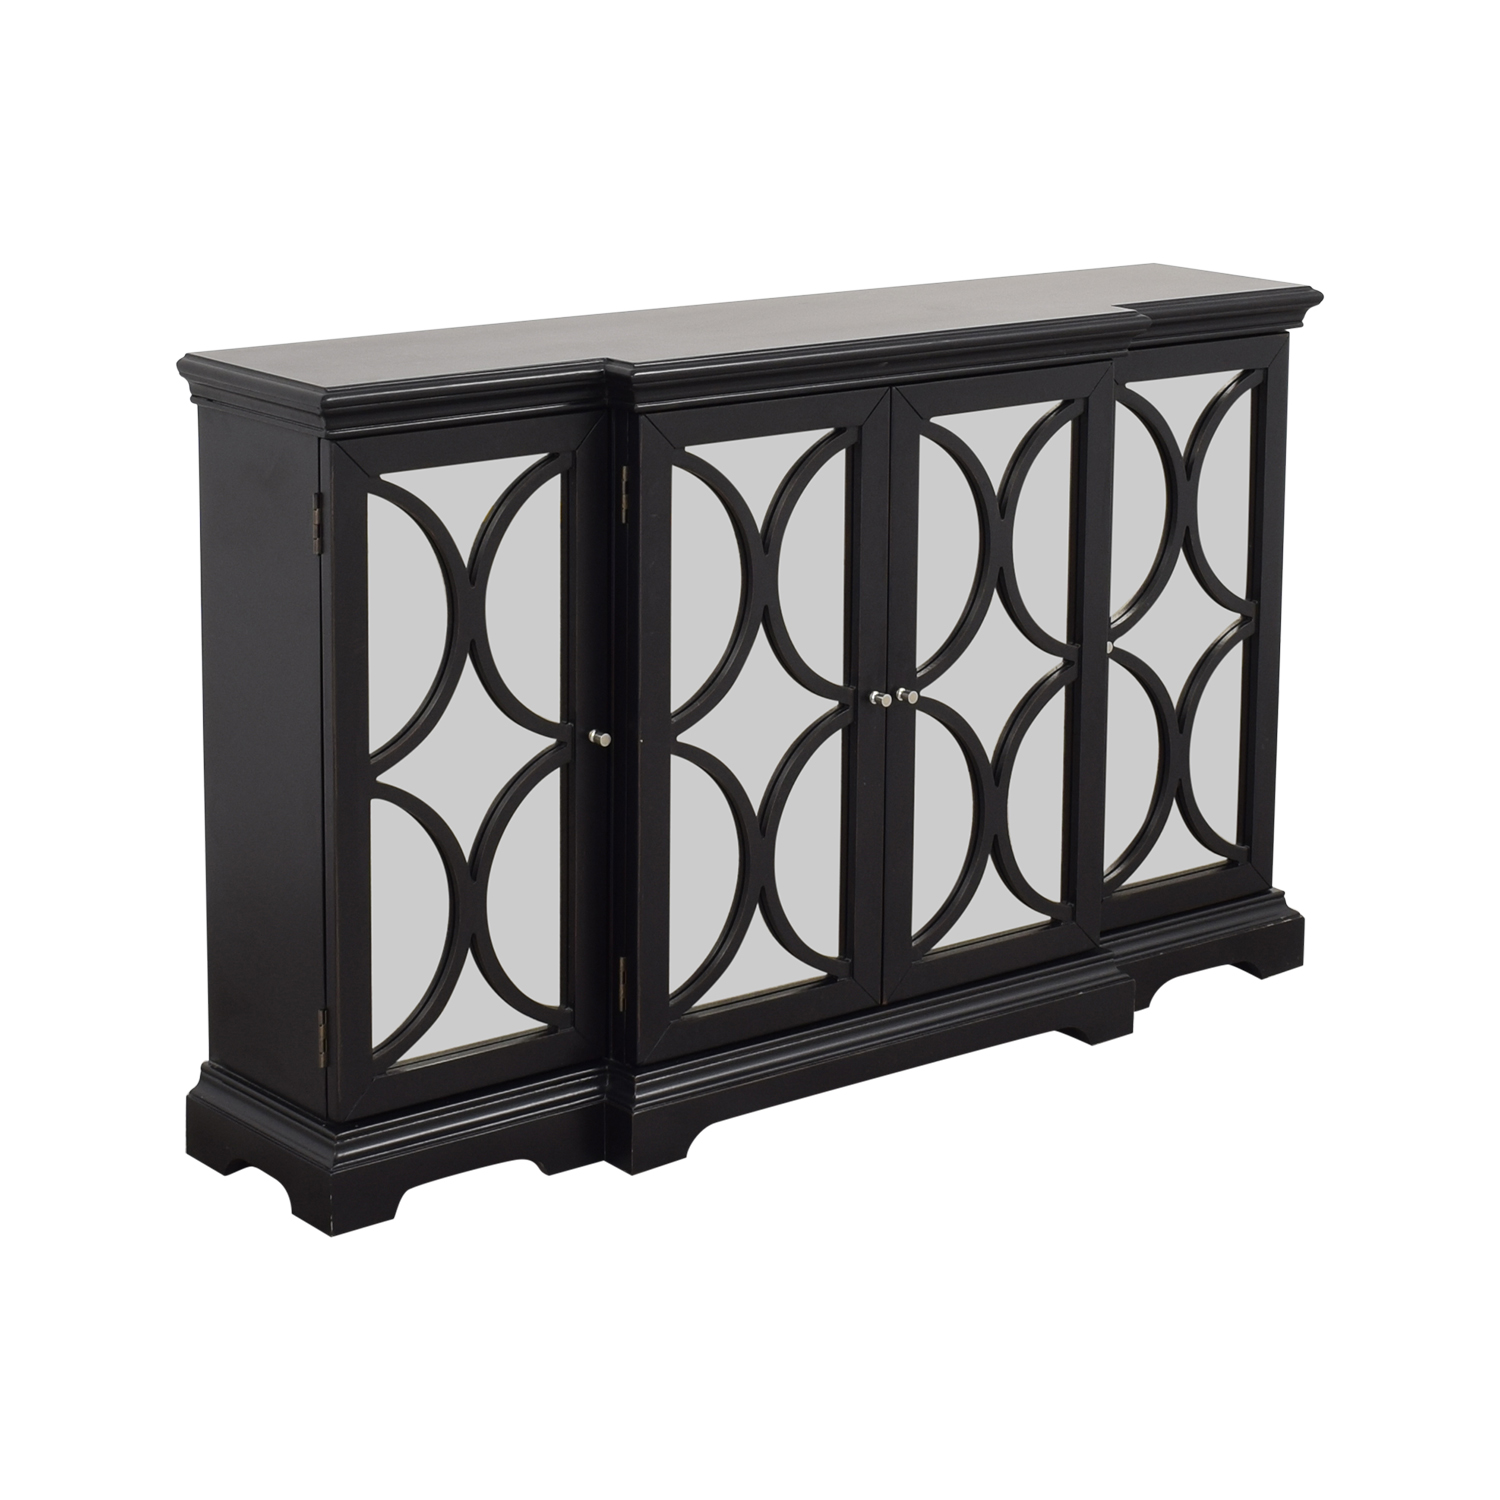 Home Merdian Accent Chest Home Meridian